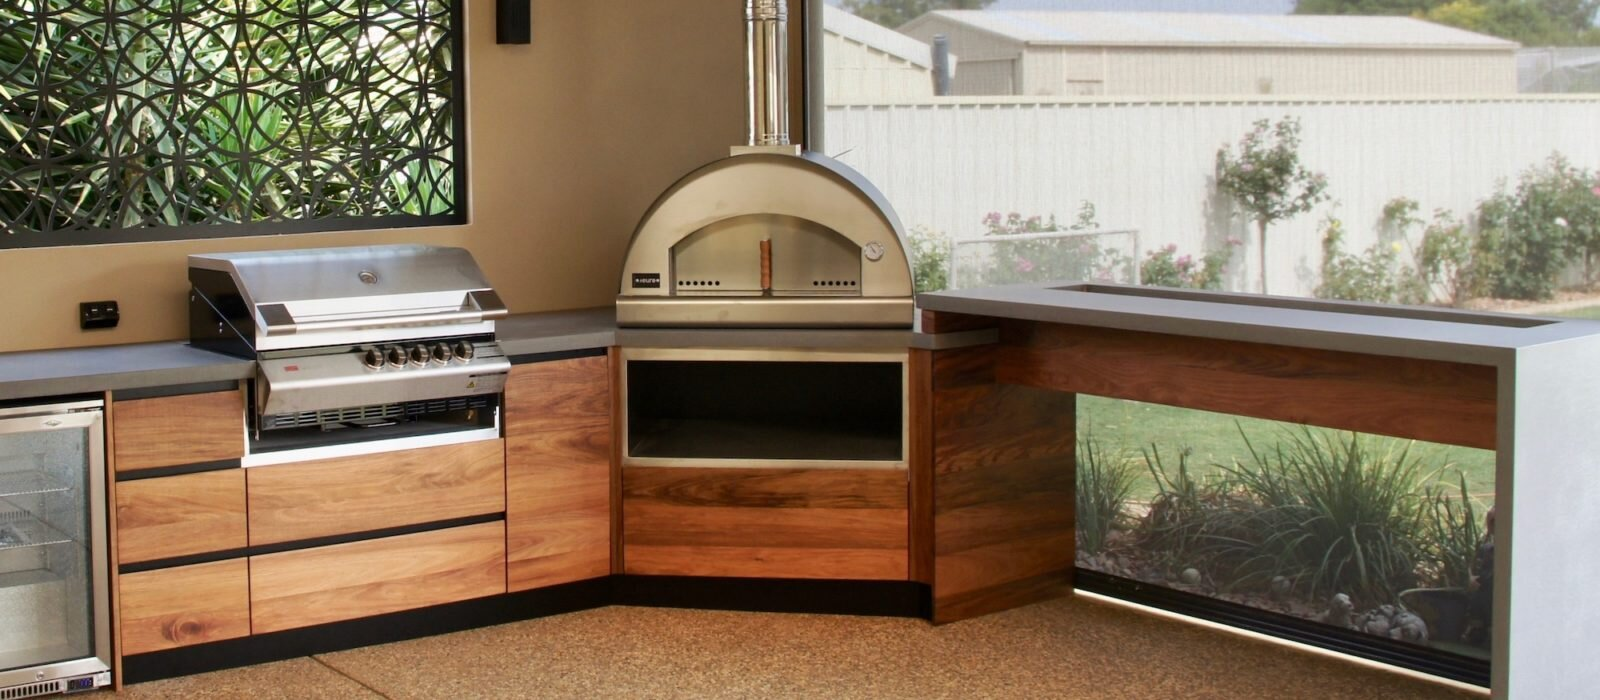 Adelaide Outdoor Kitchens Kitchens Concrete Benchtops Furniture